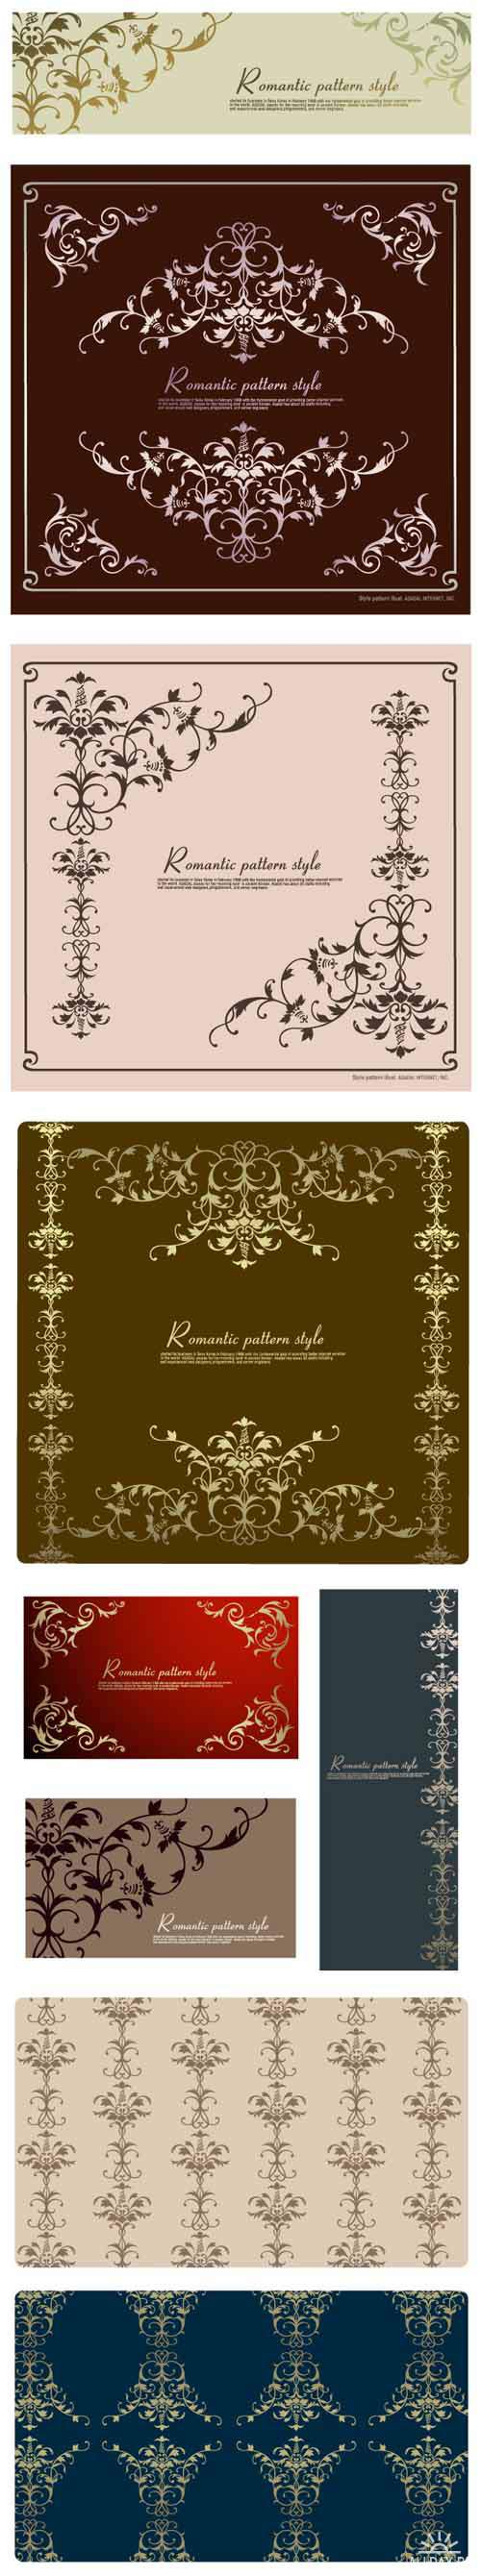 Golden Ornament Romantic Patterns